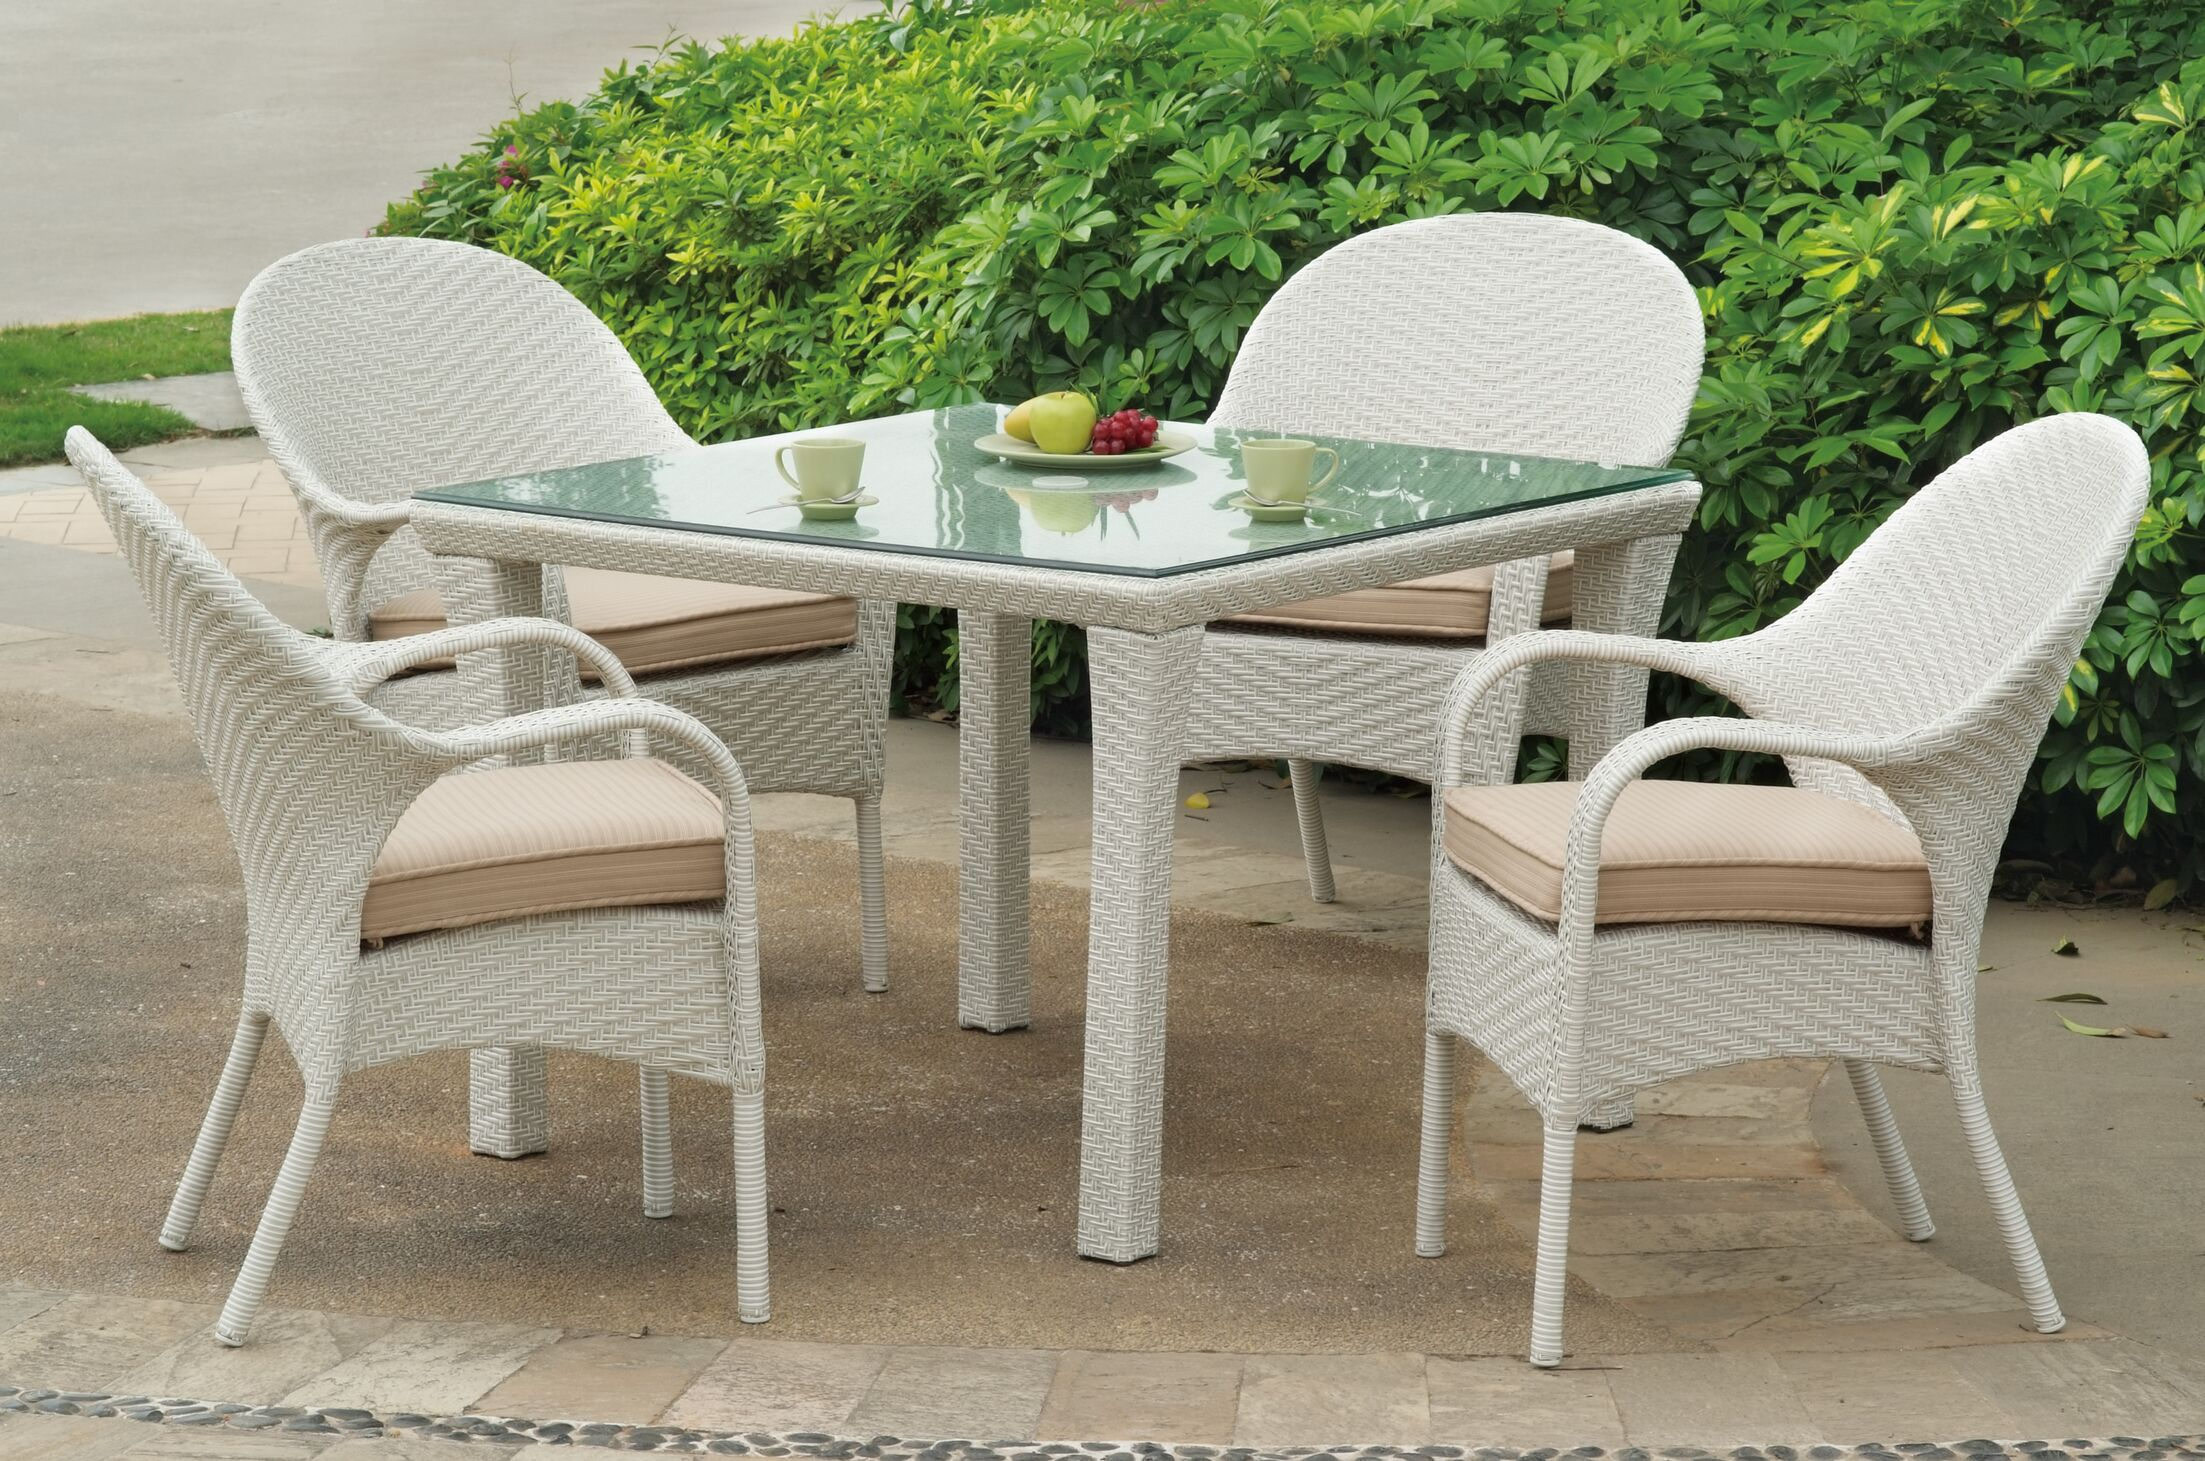 Isabell 5 Piece Dining Set with Sunbrella Cushions Cushion Color: Cast Silver